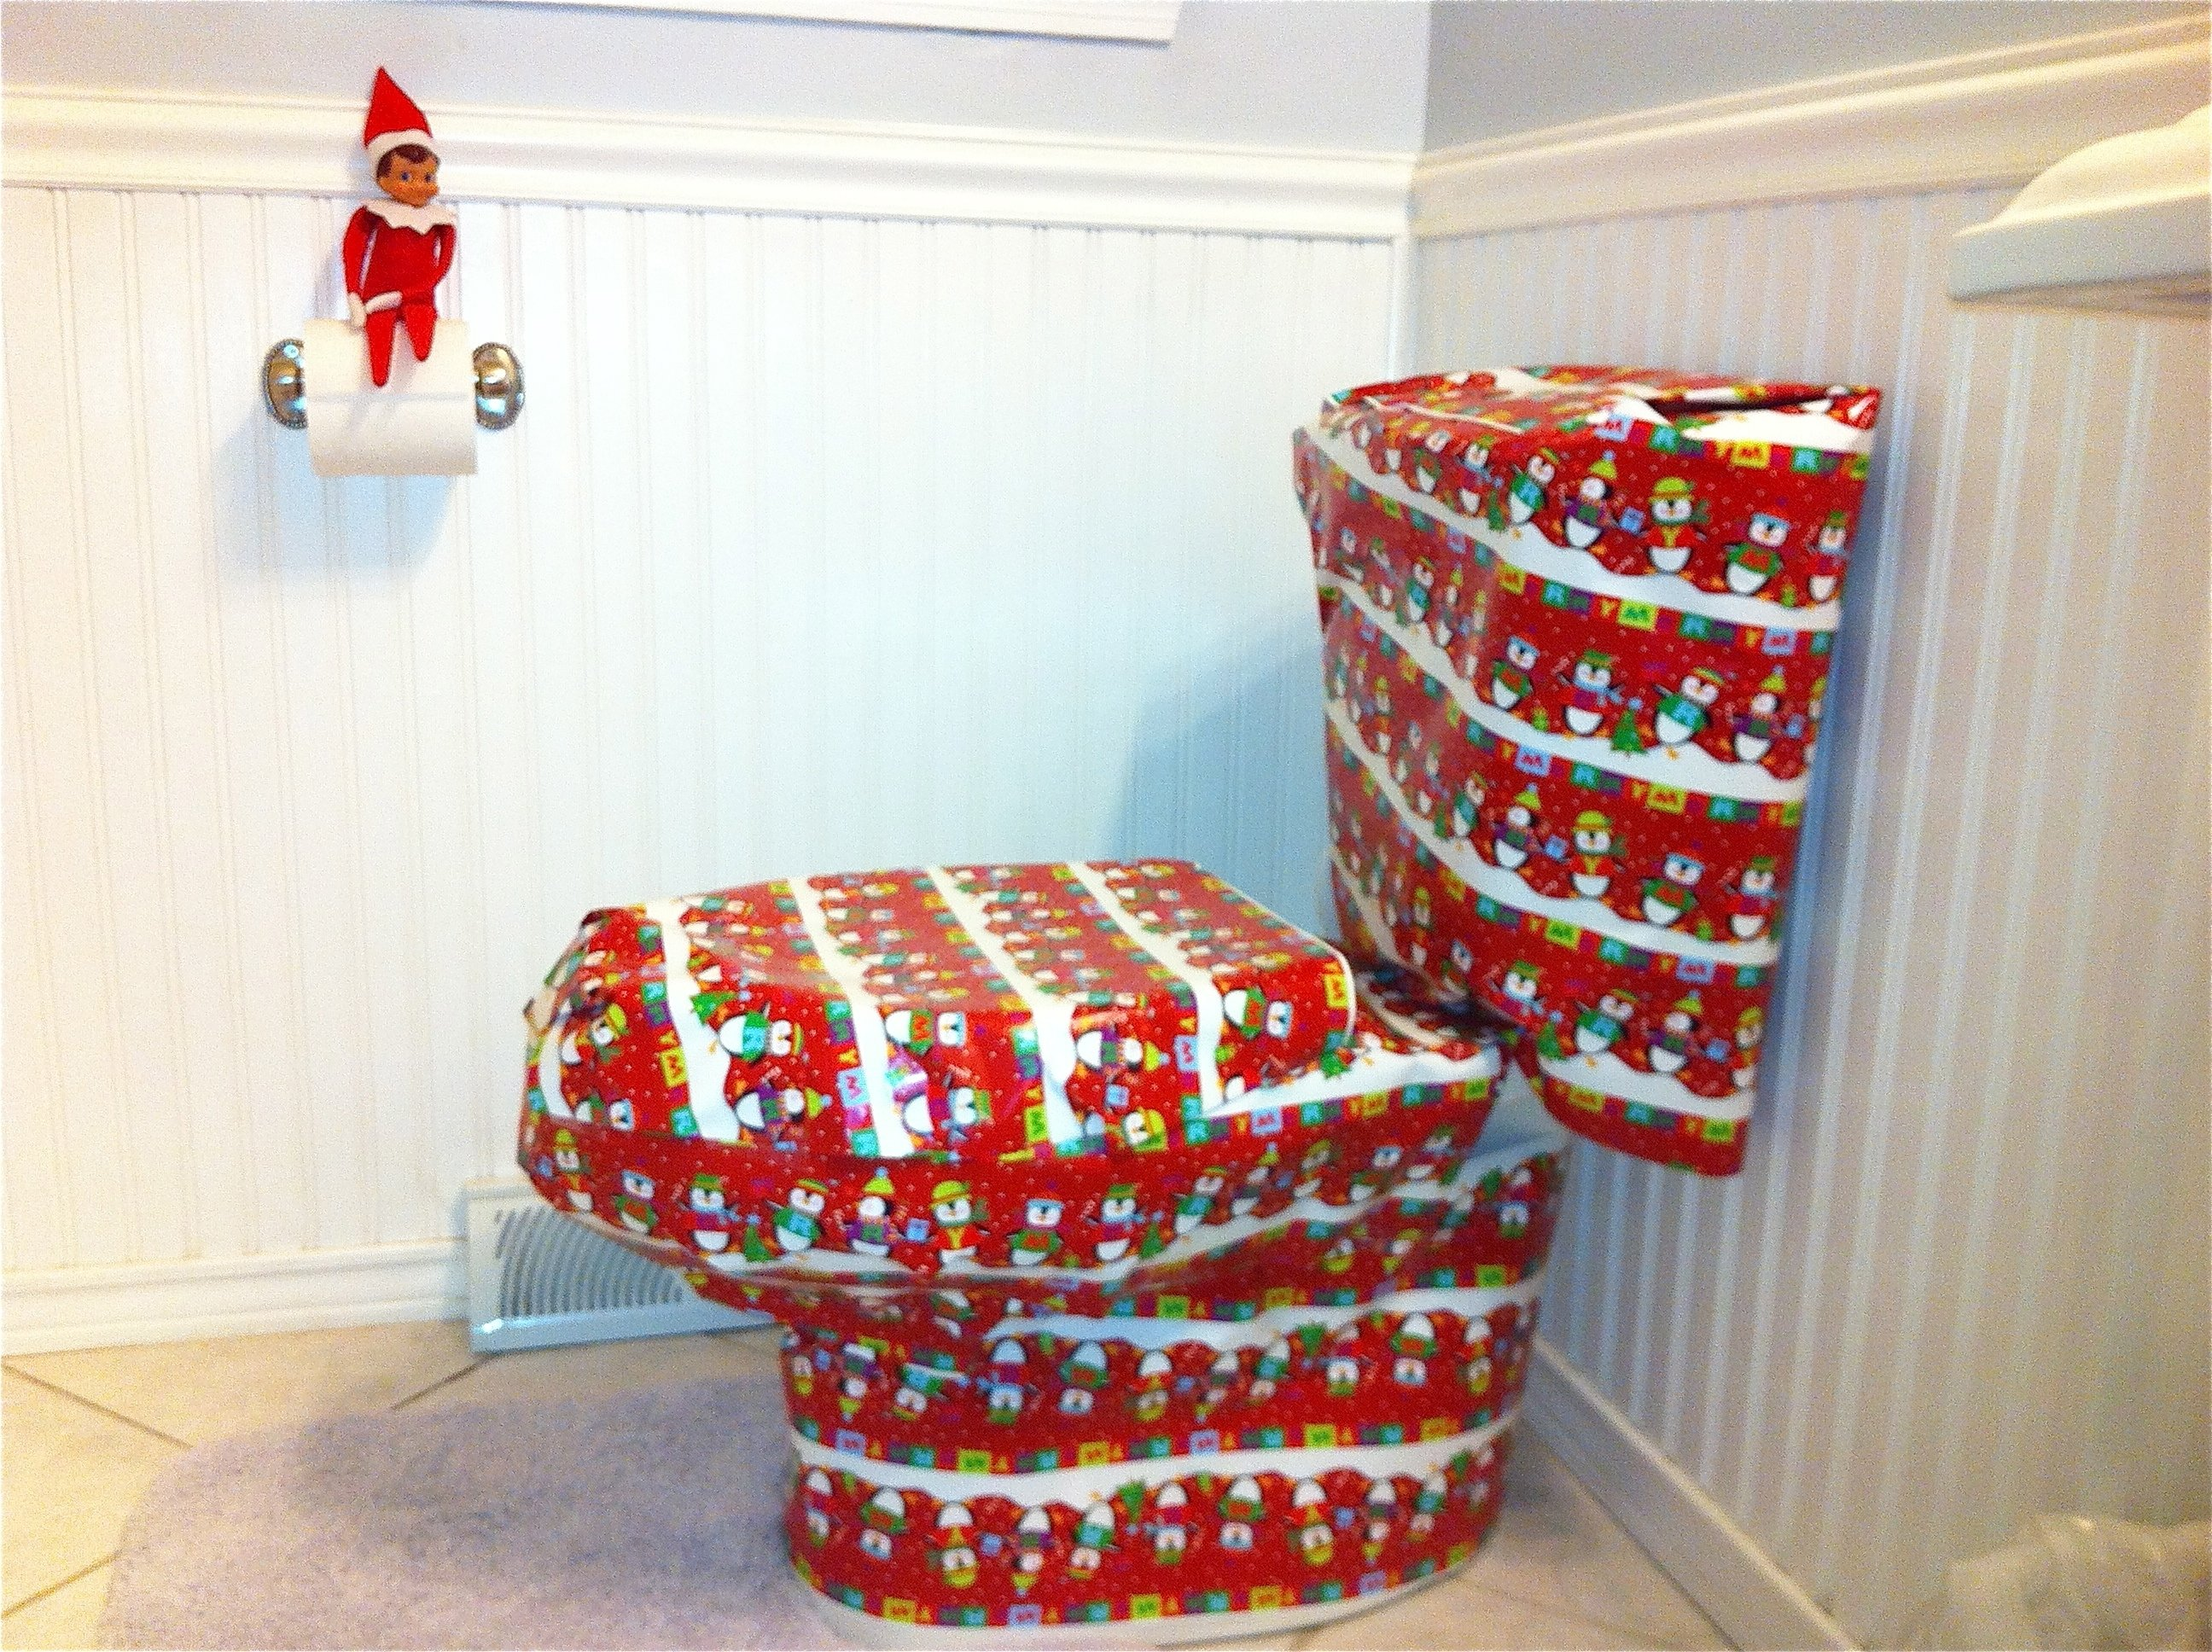 10 Fabulous Naughty Elf On A Shelf Ideas 25 elf on the shelf quick and easy ideas that take under 5 mins